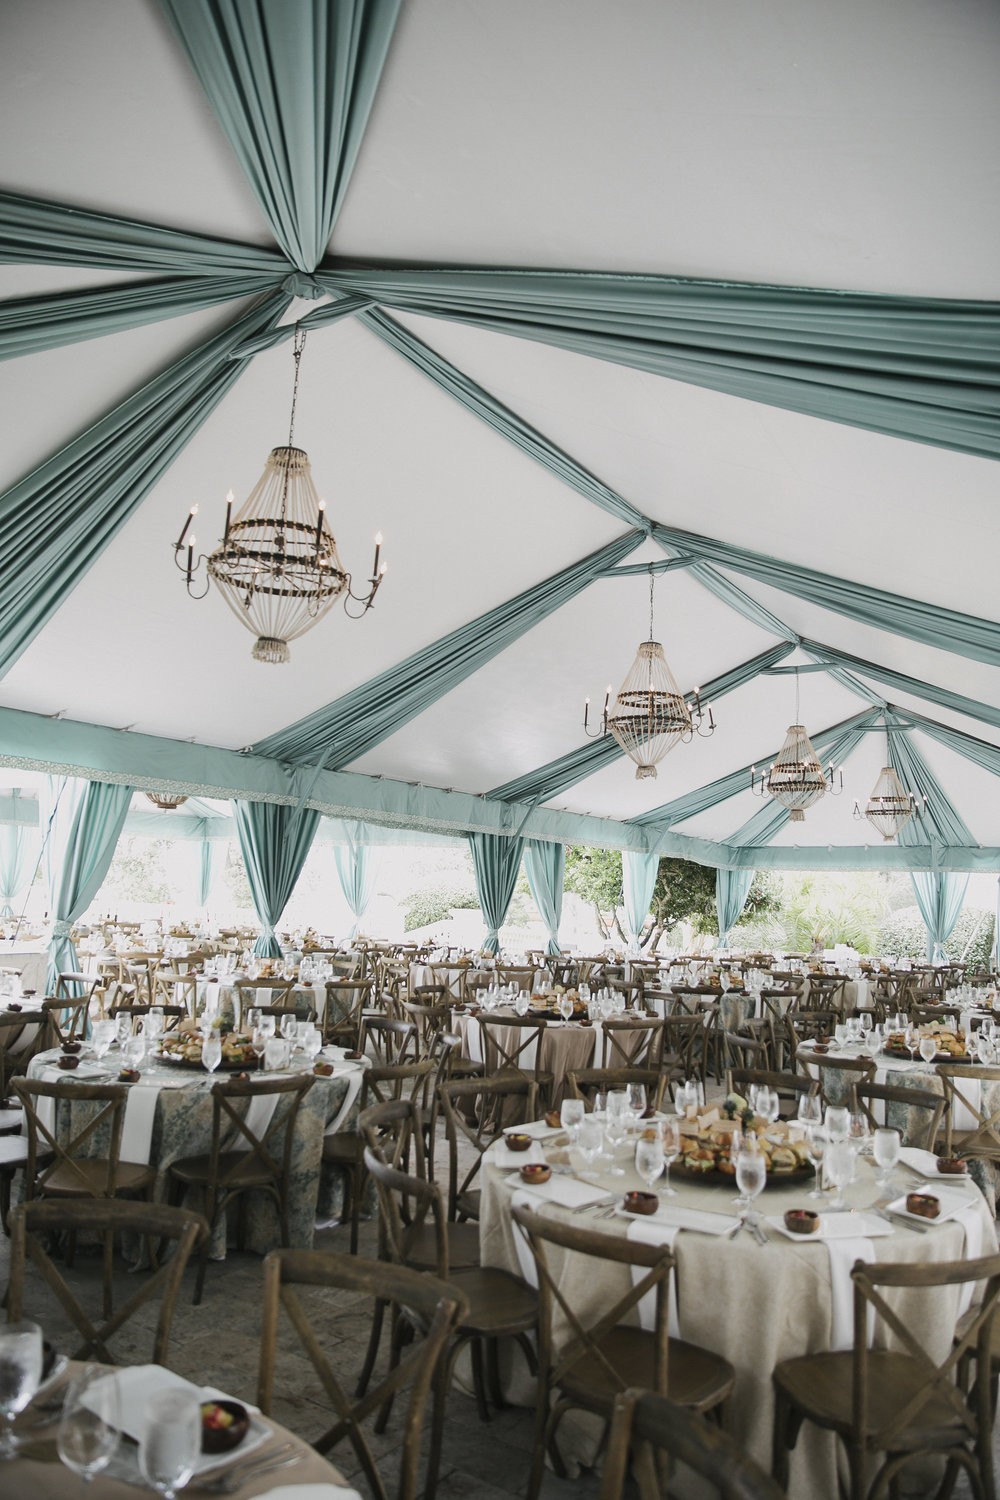 Tented lunch, here I come!  Photo by John Cain Sargent.